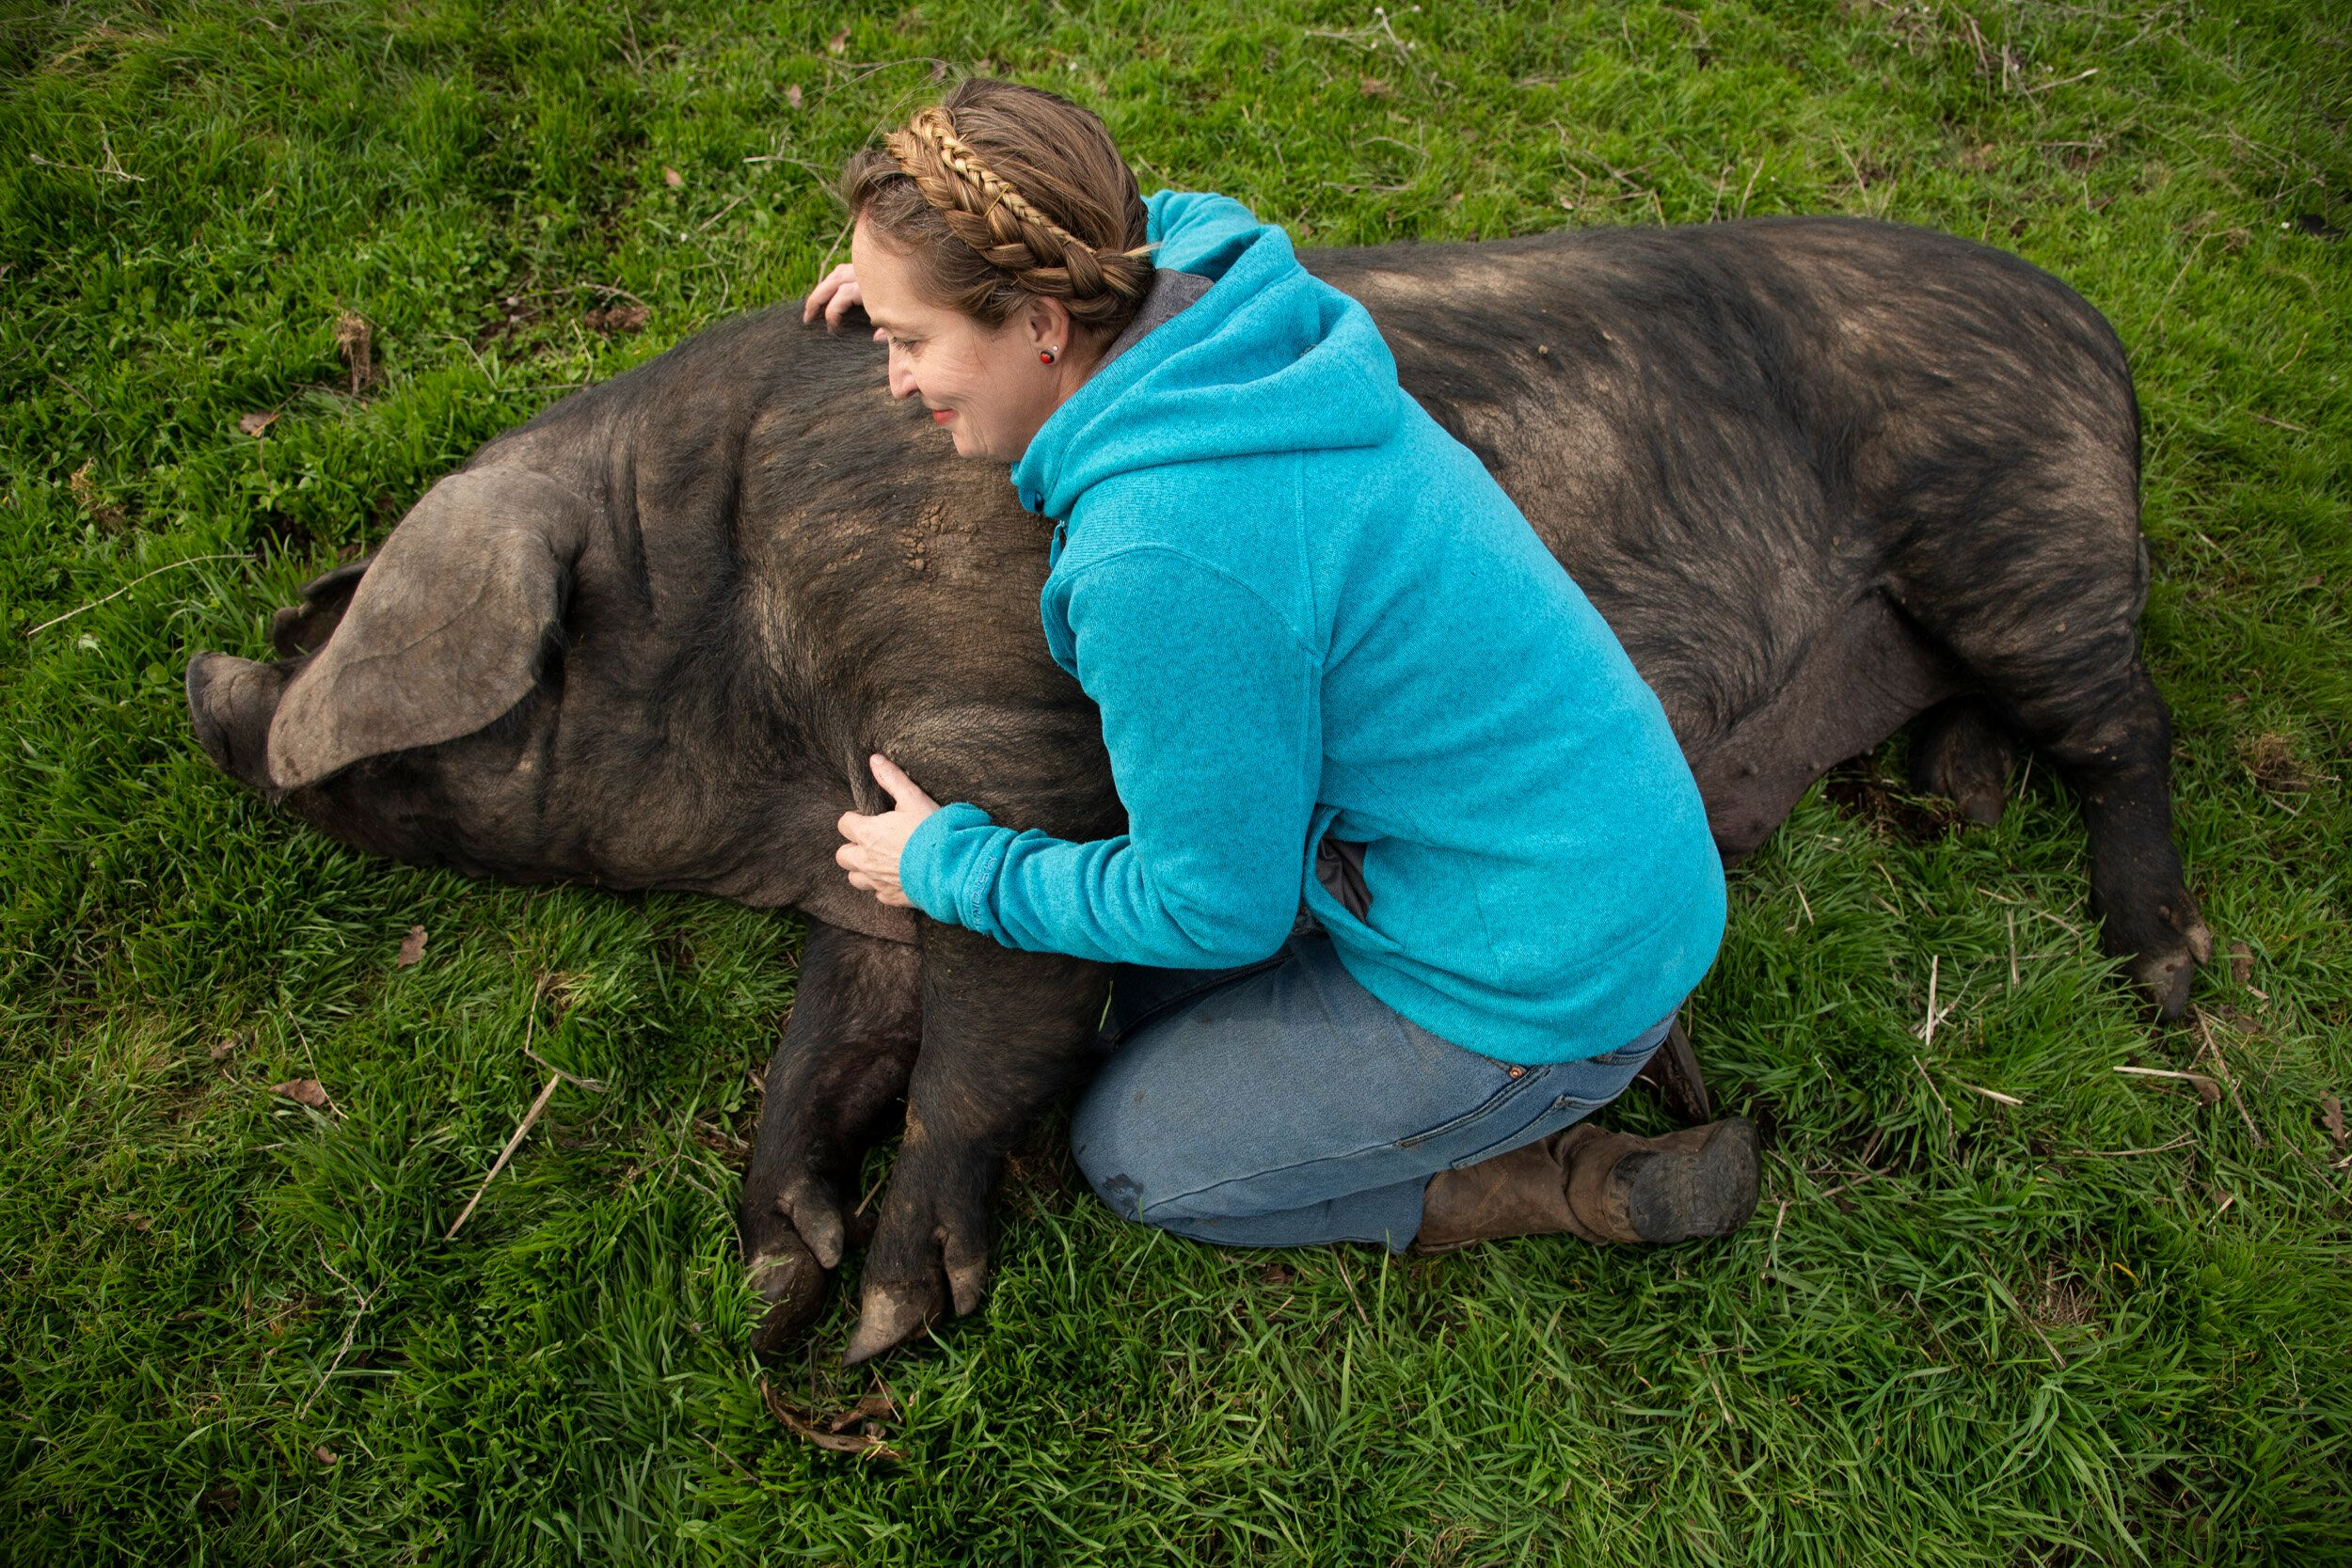 Brown gives one of her pigs a belly rub on her ranch.